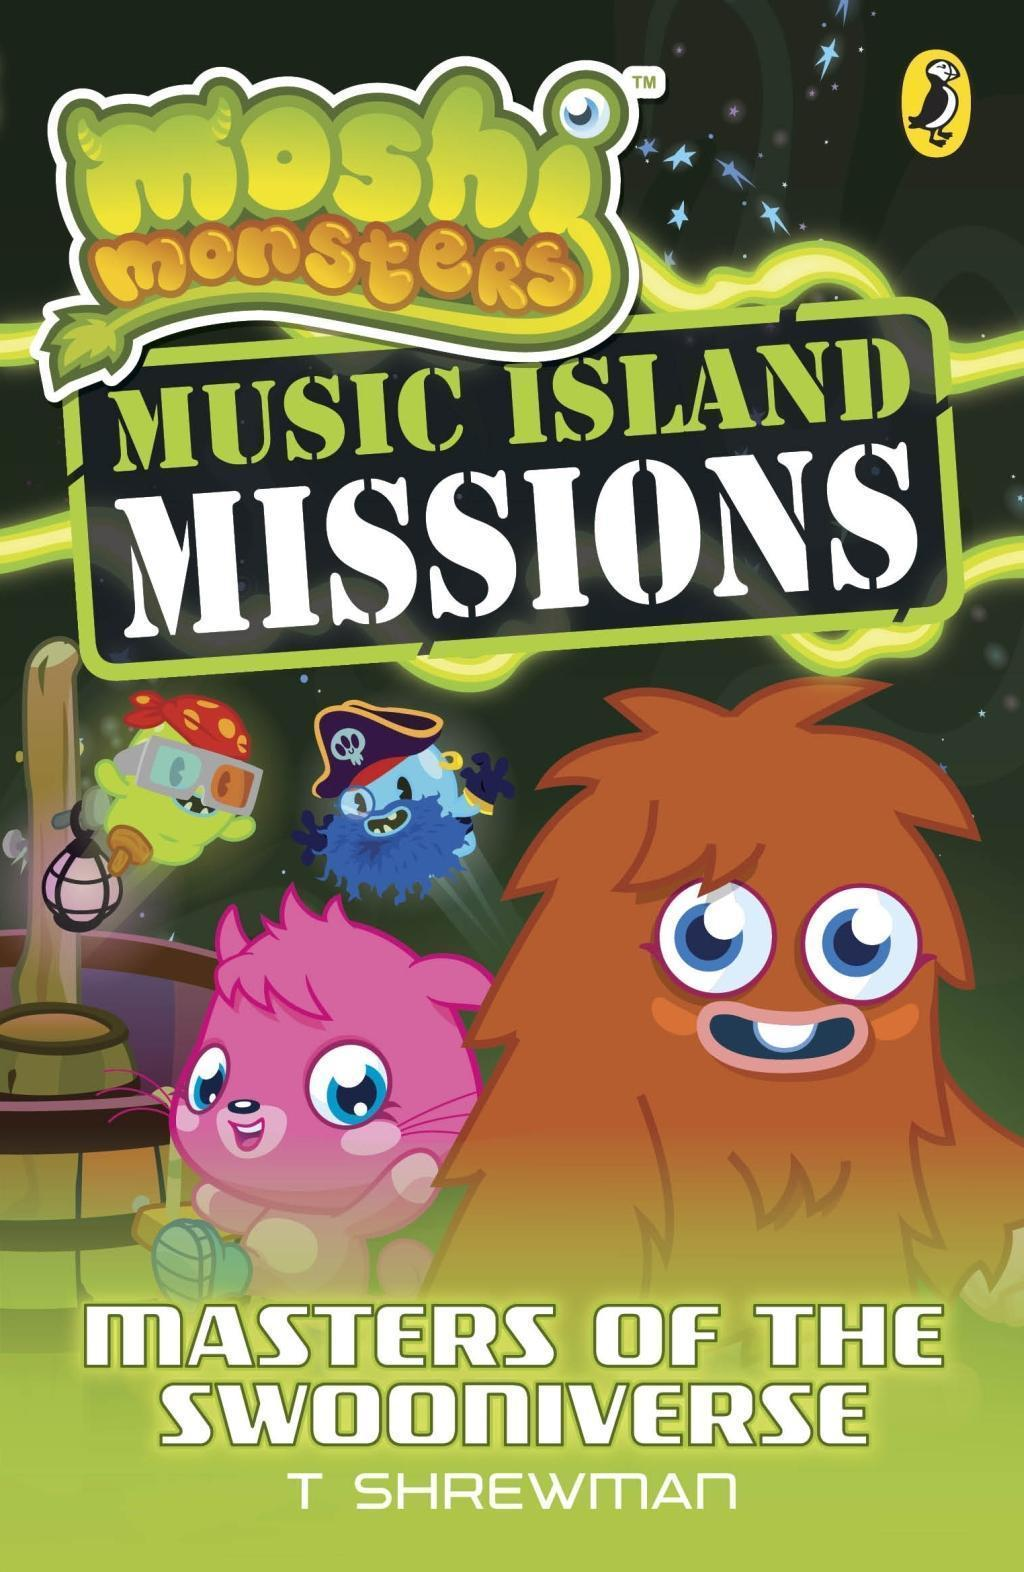 Moshi Monsters: Music Island Missions 3: Masters of the Swooniverse